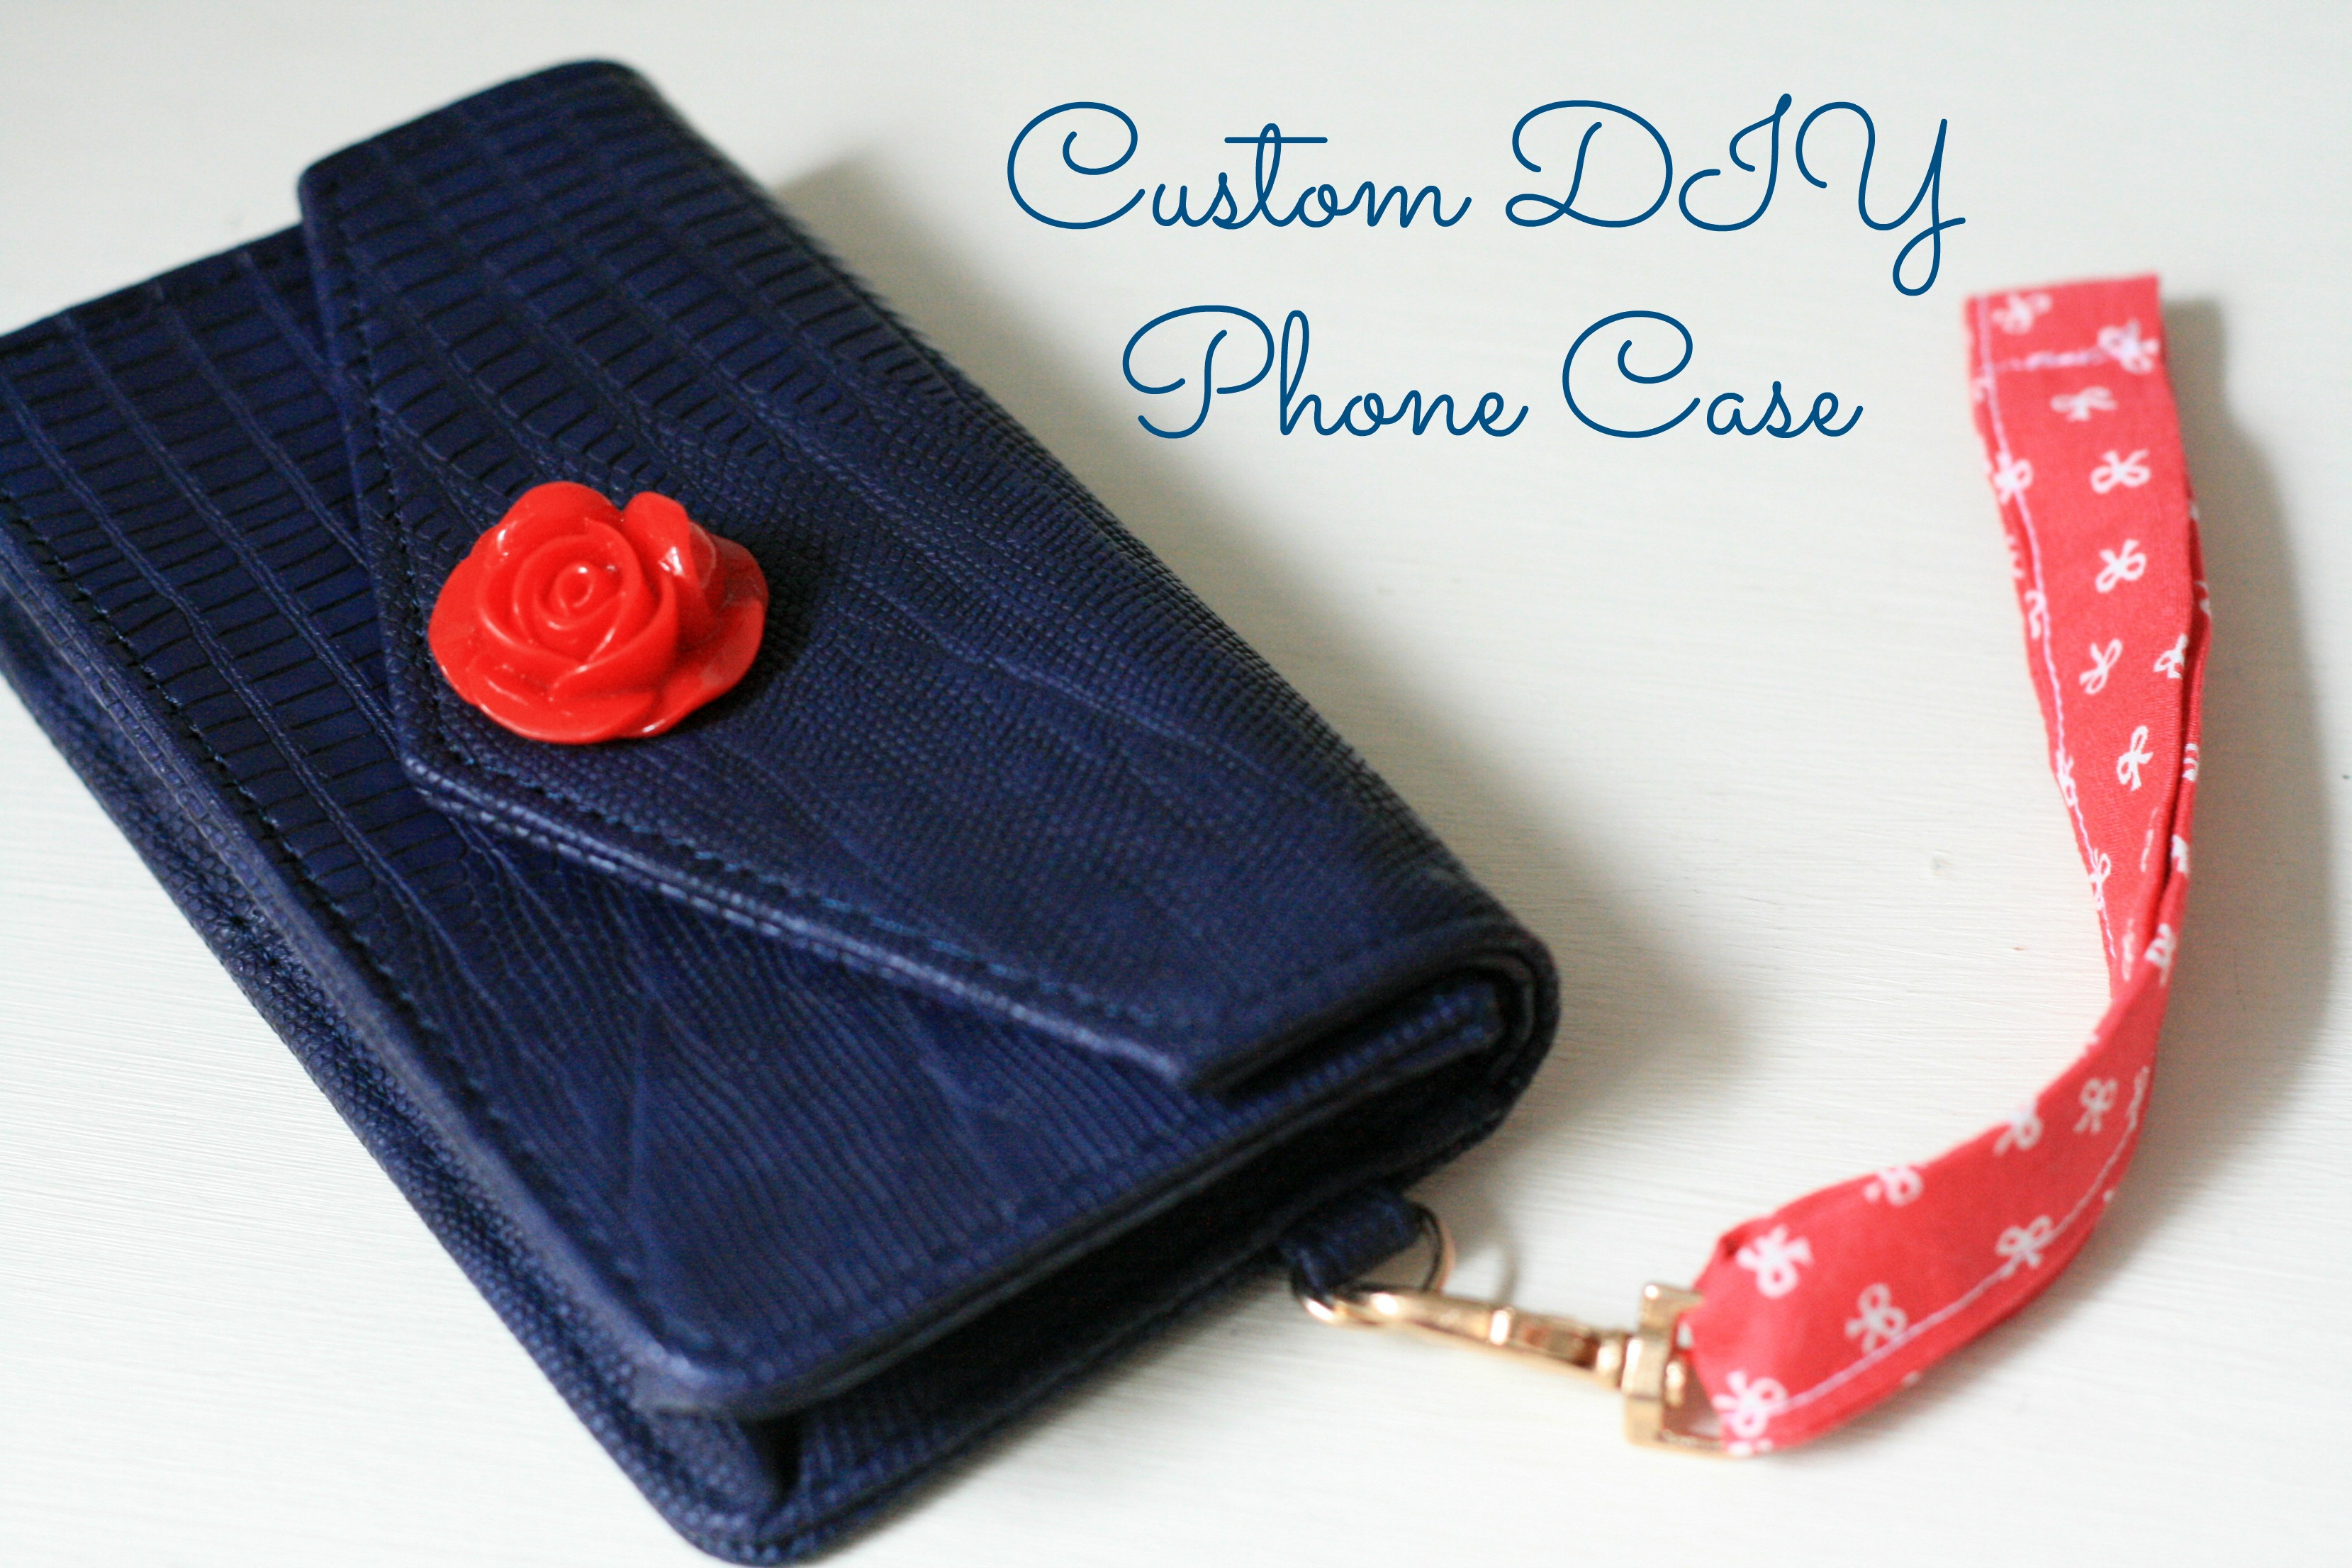 Custom diy phone 3318 2212 inspiration for for Diy custom phone case